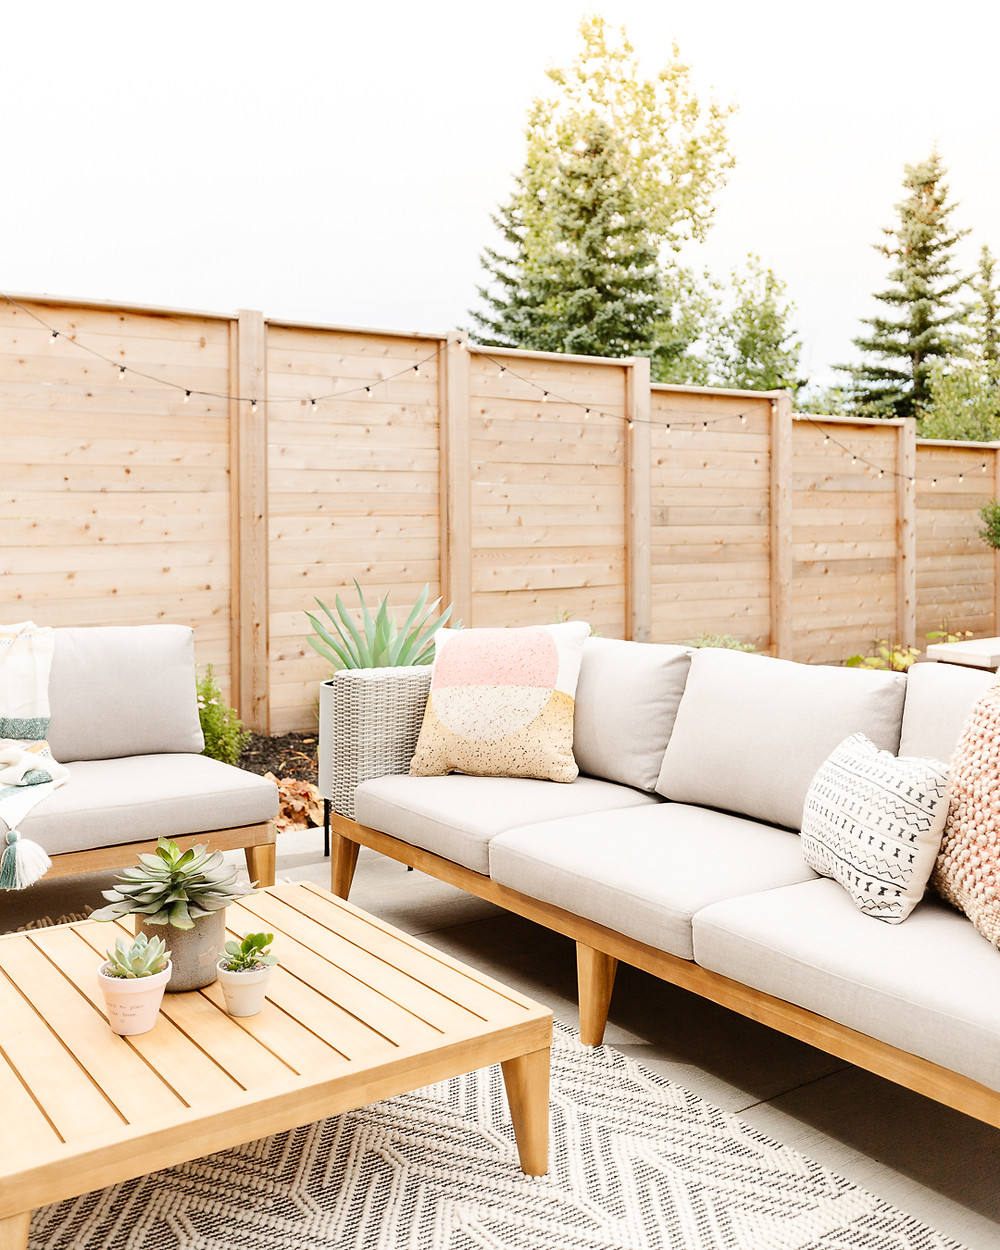 Wicker sofa with wood accents and beige cushions black and white area rug chair with wood accent and striped throw blanket wood accent table with succulent pots potted succulent plant on black stand wood fence backyard concrete patio space string lights perennial flower bed